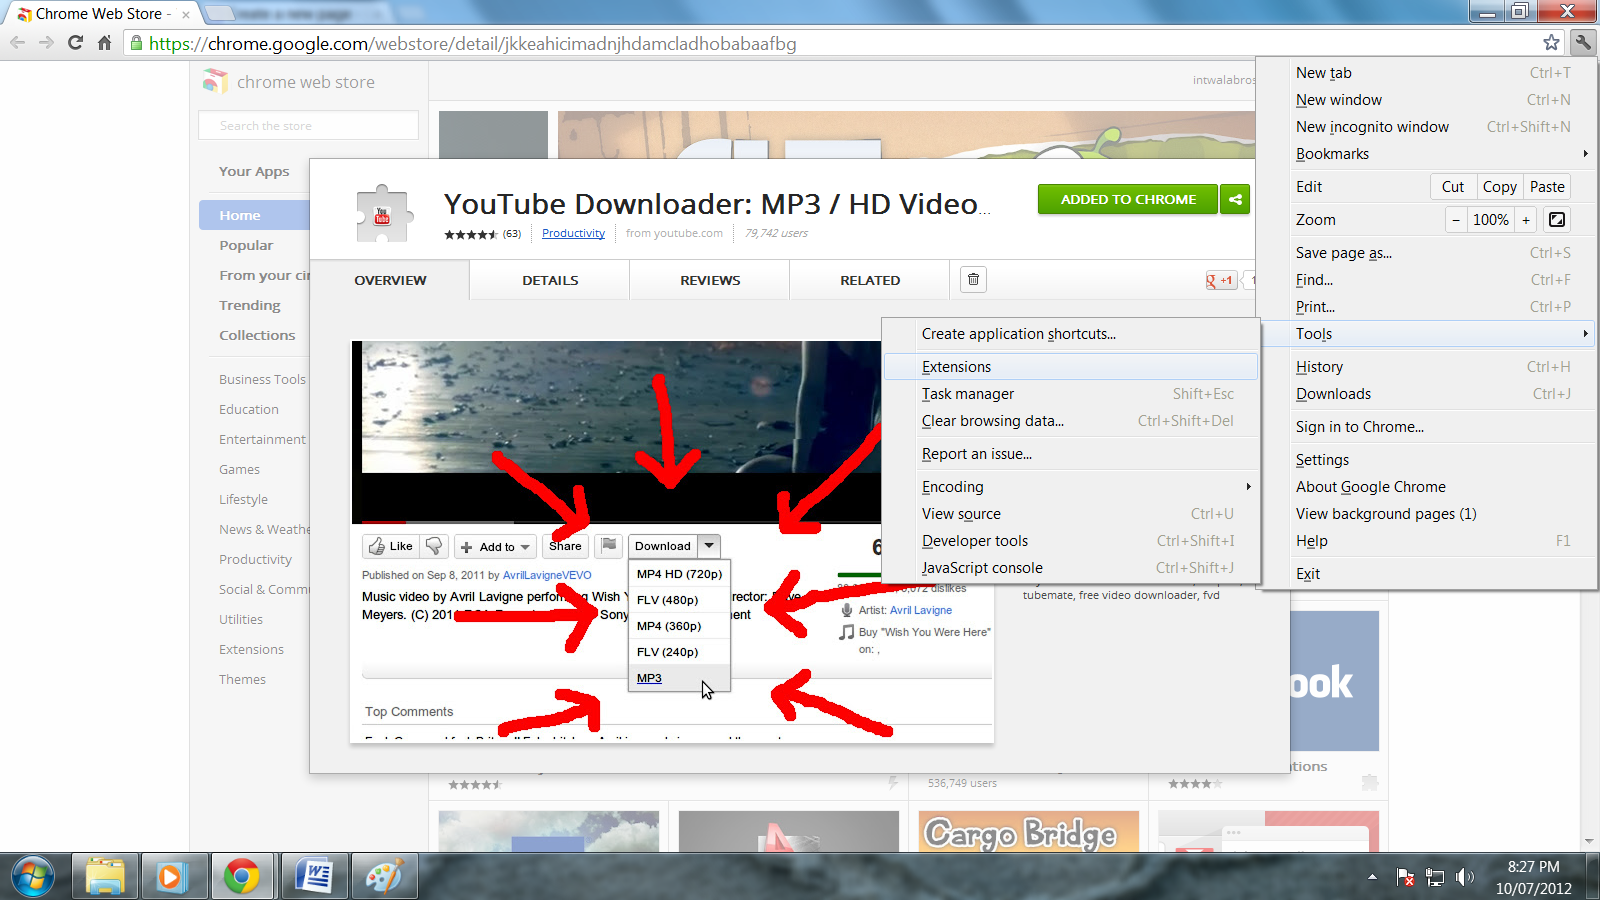 Youtube Downloader For Chrome Extension 2012 Movie - ohiosima